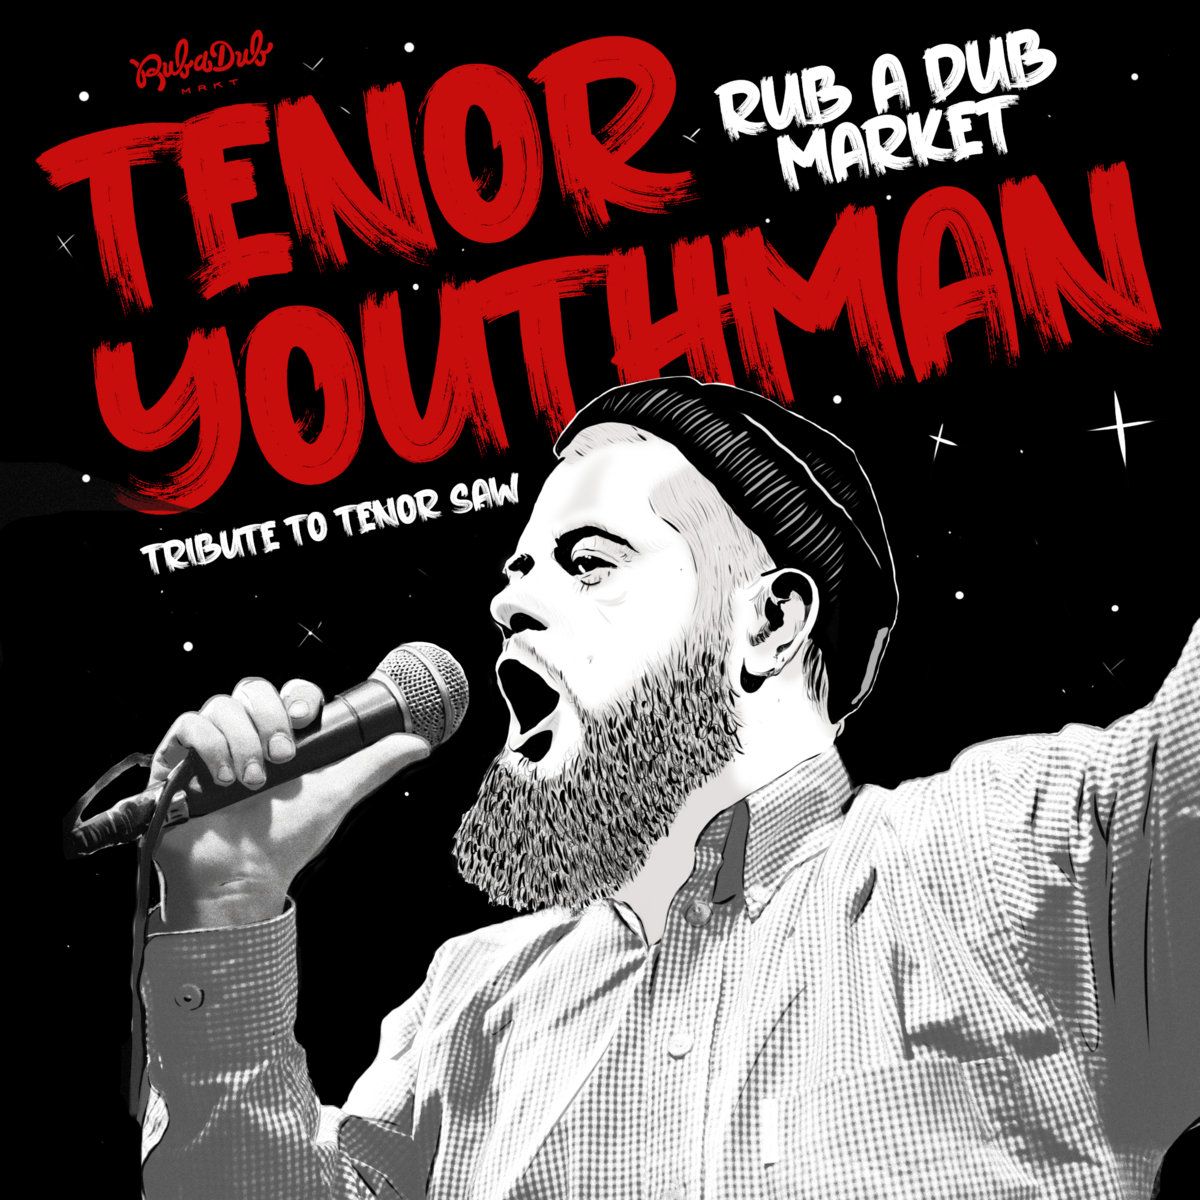 Tenor Youthman : Rub A Dub Market (Mix Jamafra Studio)